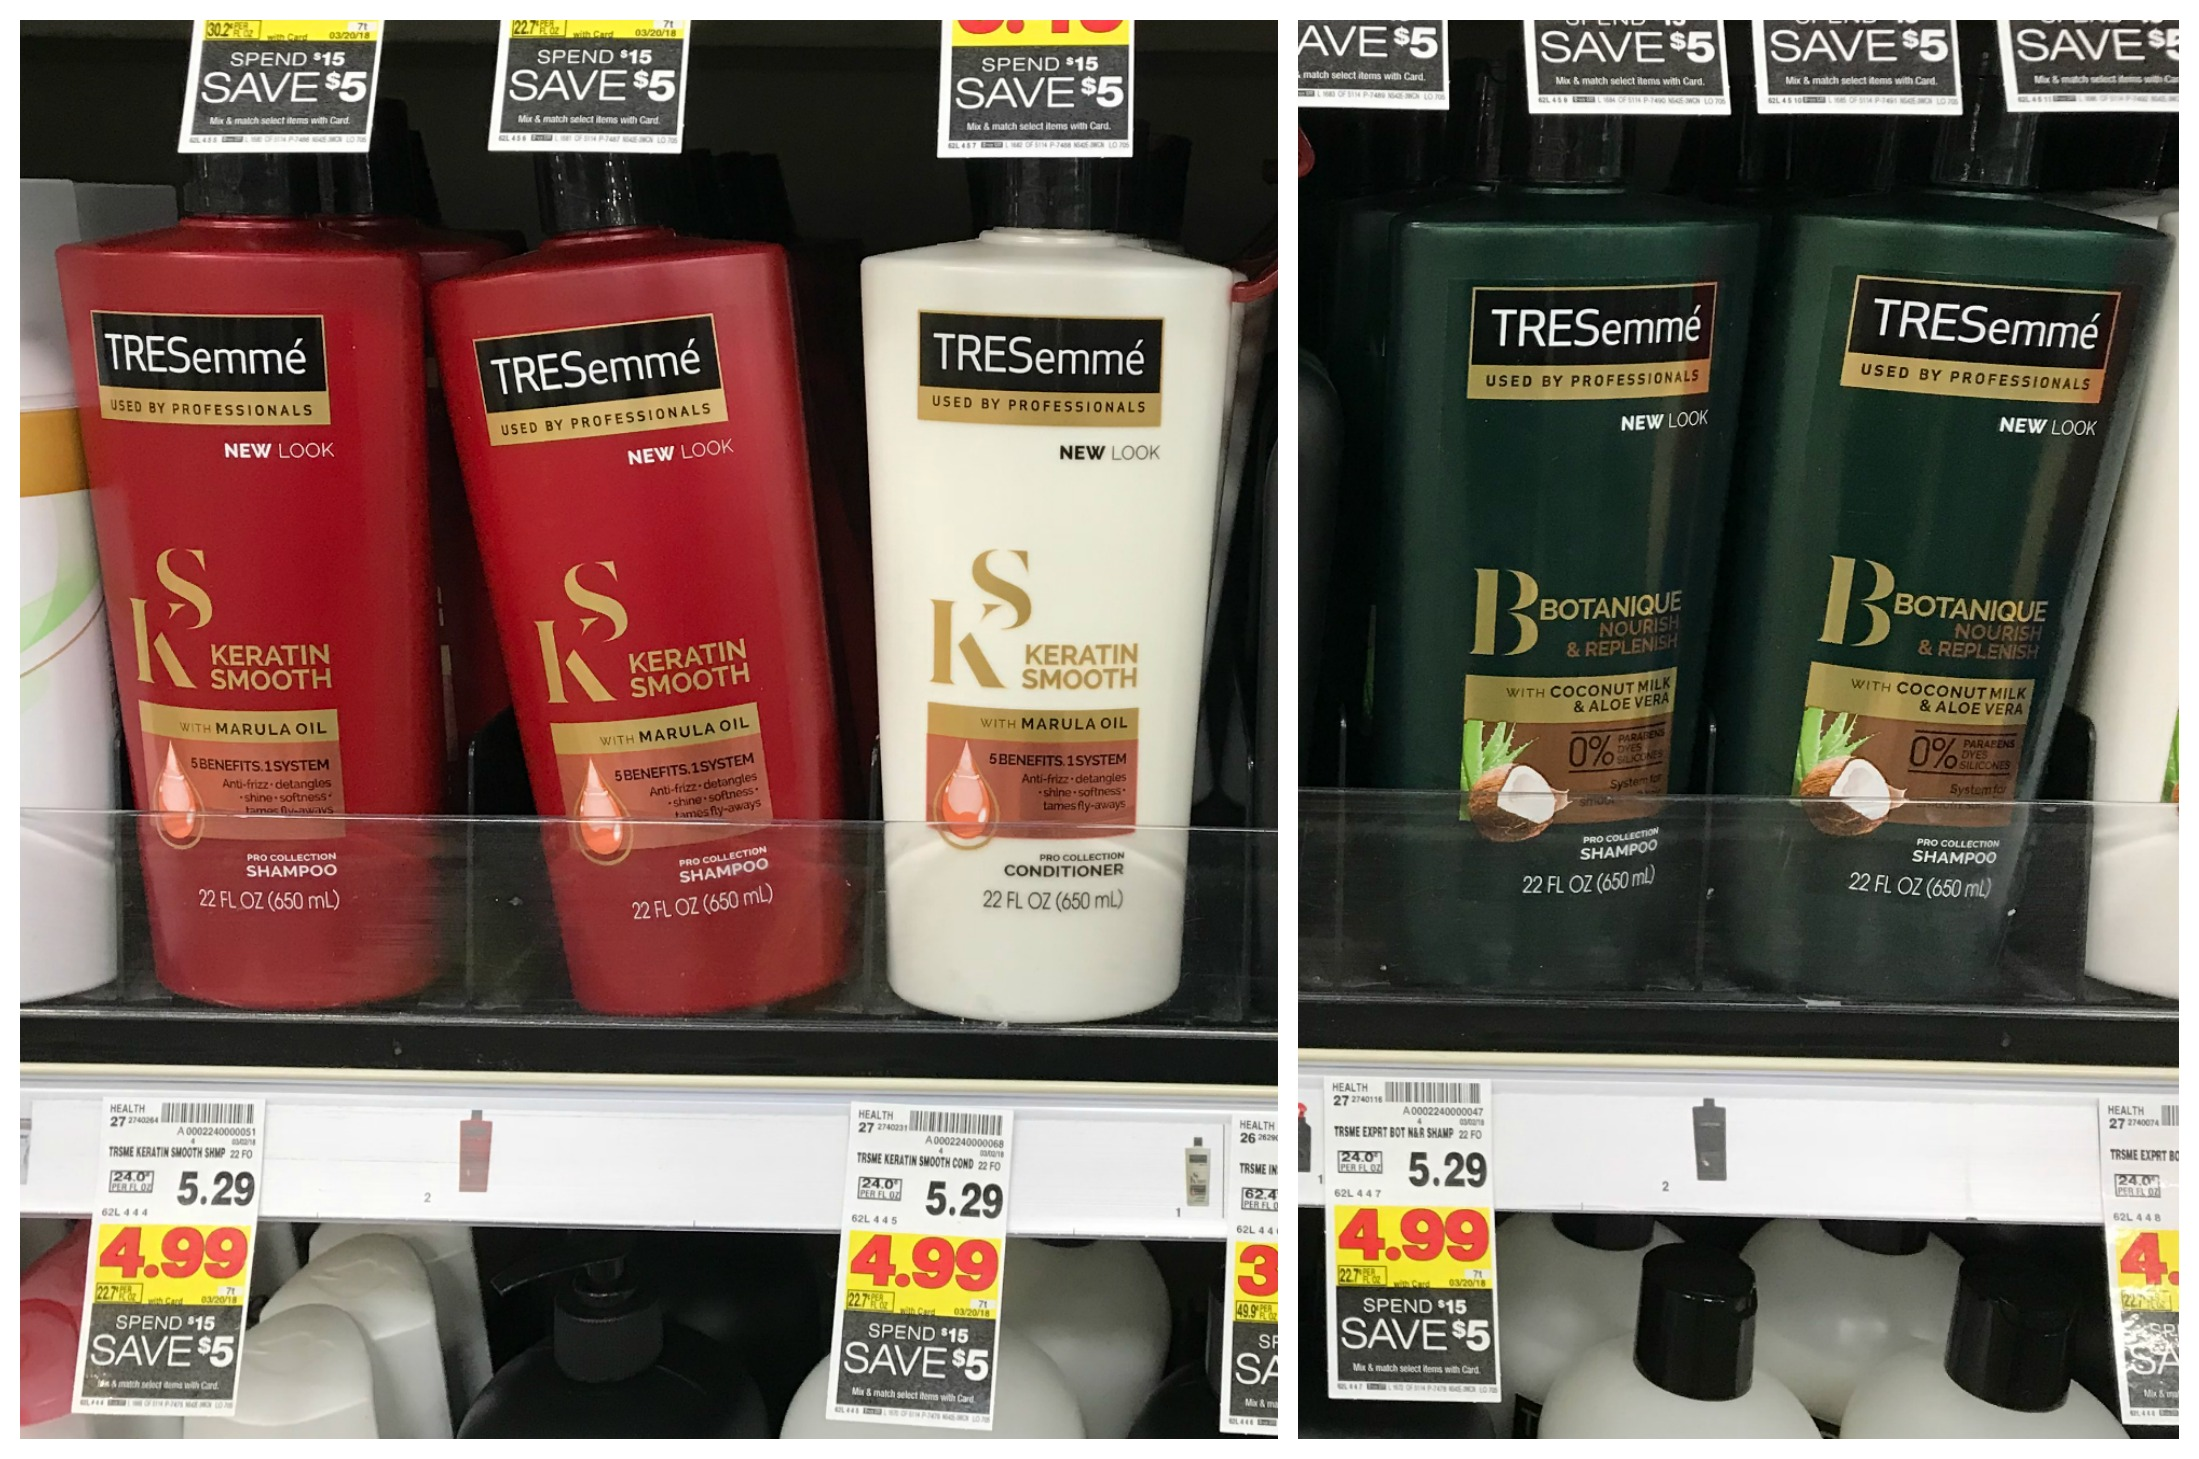 Tresemme Pro Collection Shampoo Amp Conditioner Only 1 25